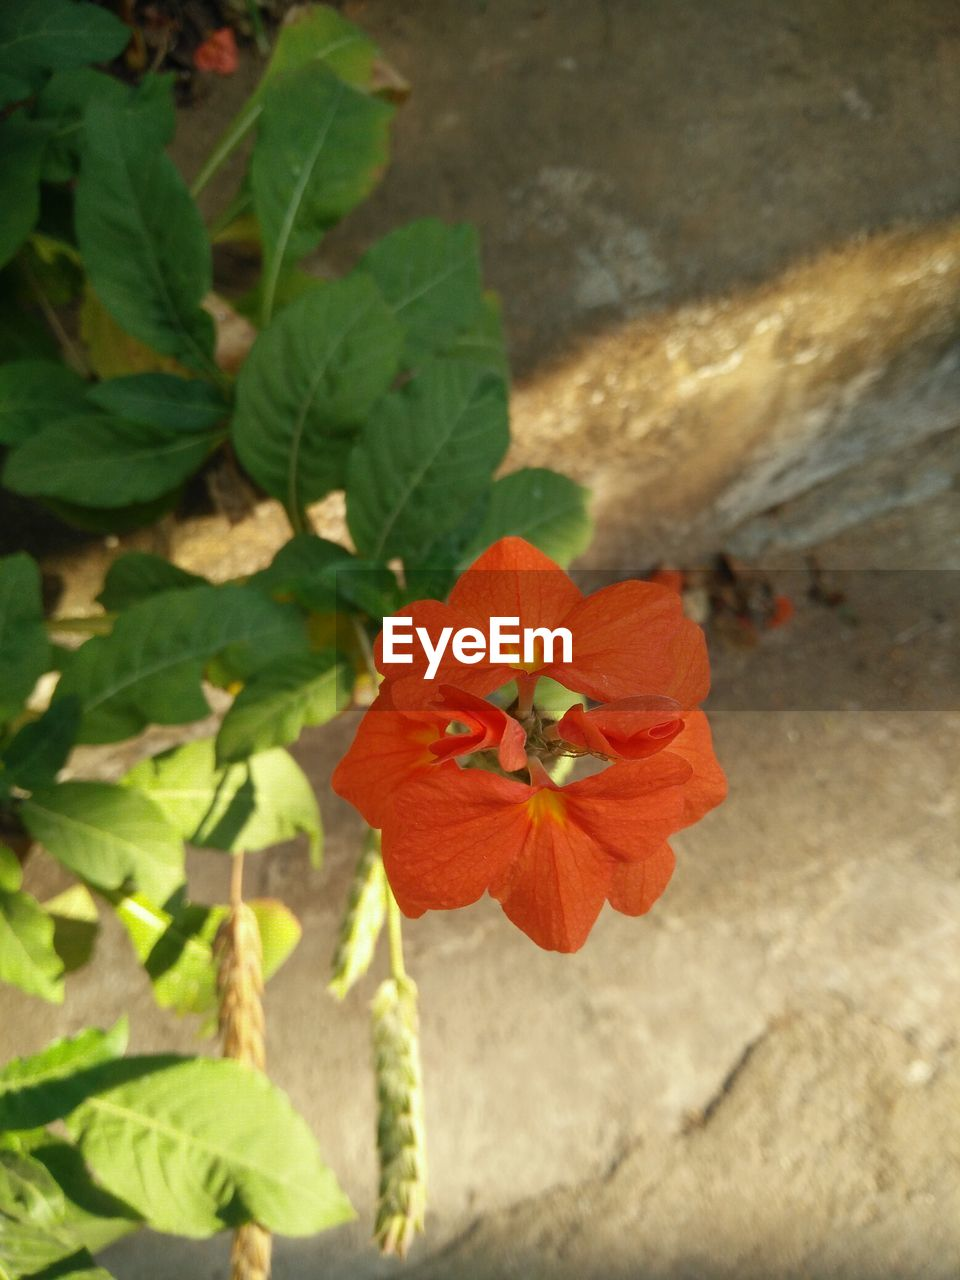 flower, plant, petal, nature, flower head, growth, day, beauty in nature, fragility, leaf, outdoors, no people, freshness, blooming, hibiscus, close-up, periwinkle